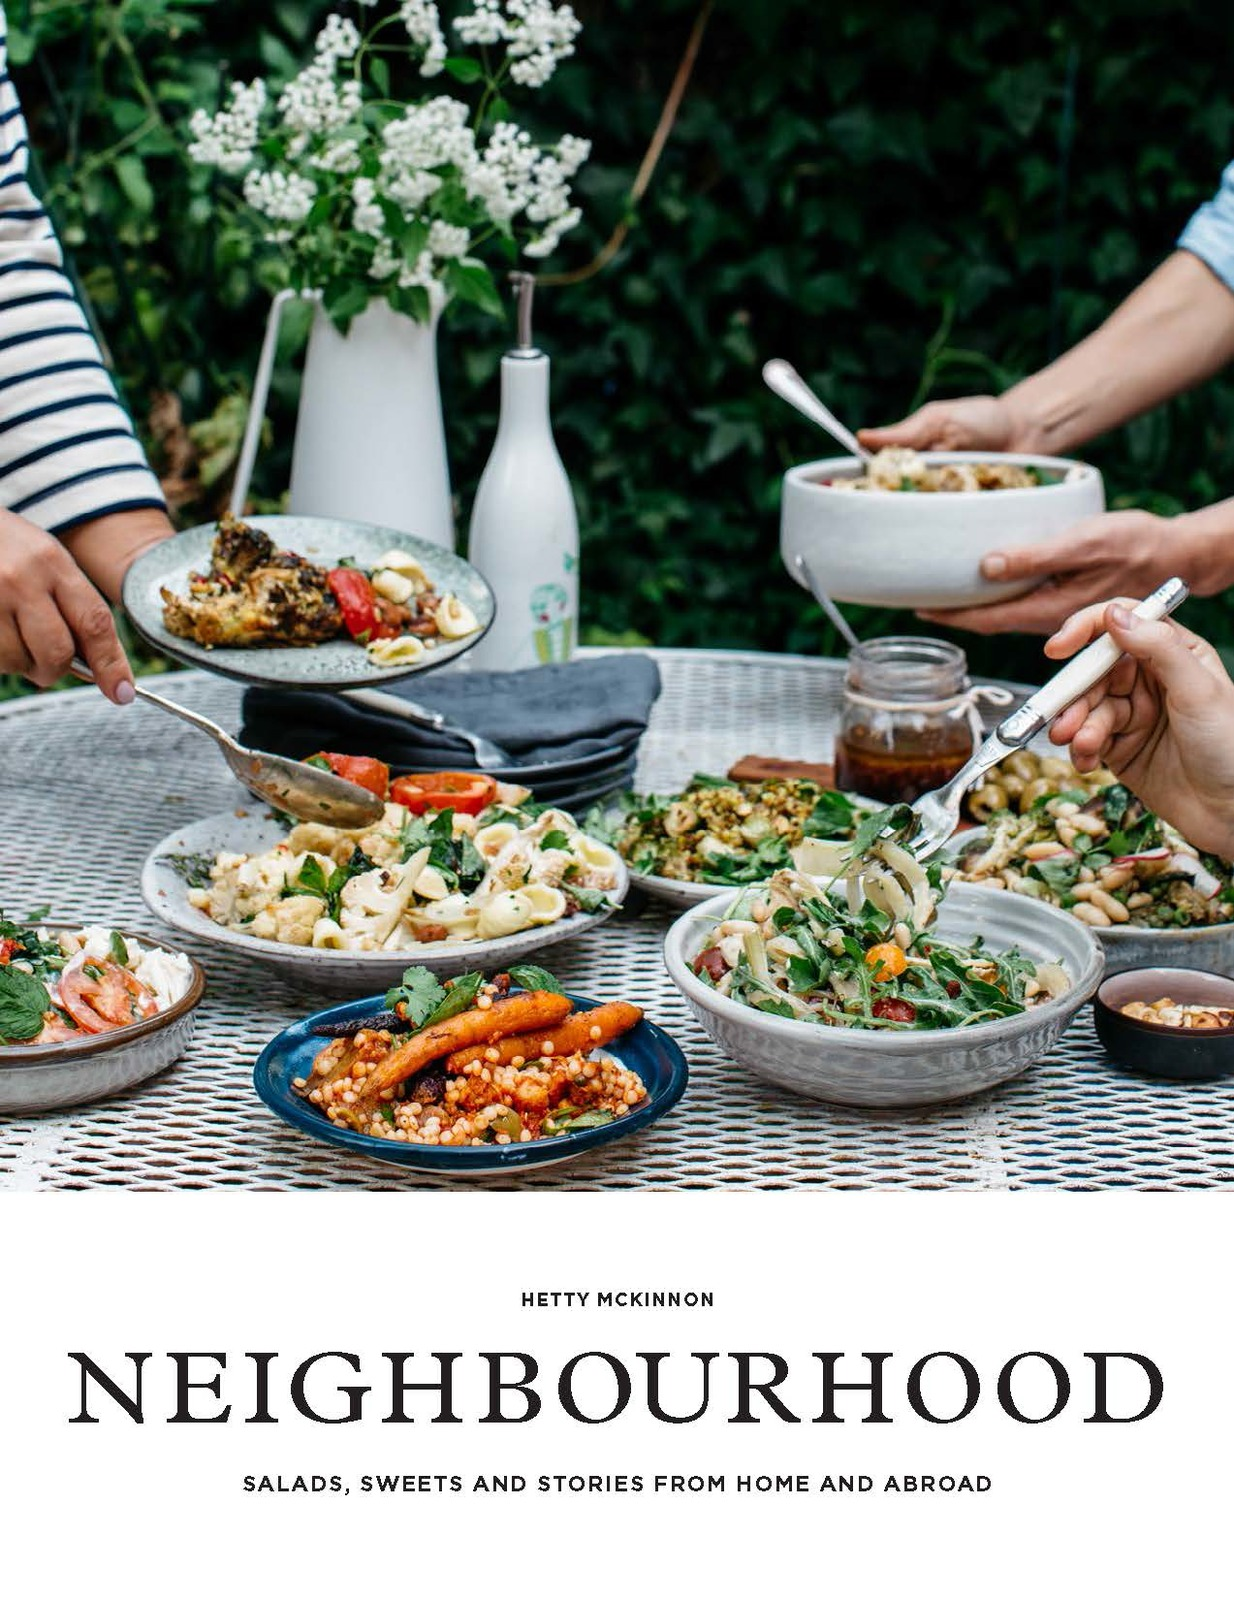 Neighbourhood by Hetty McKinnon image